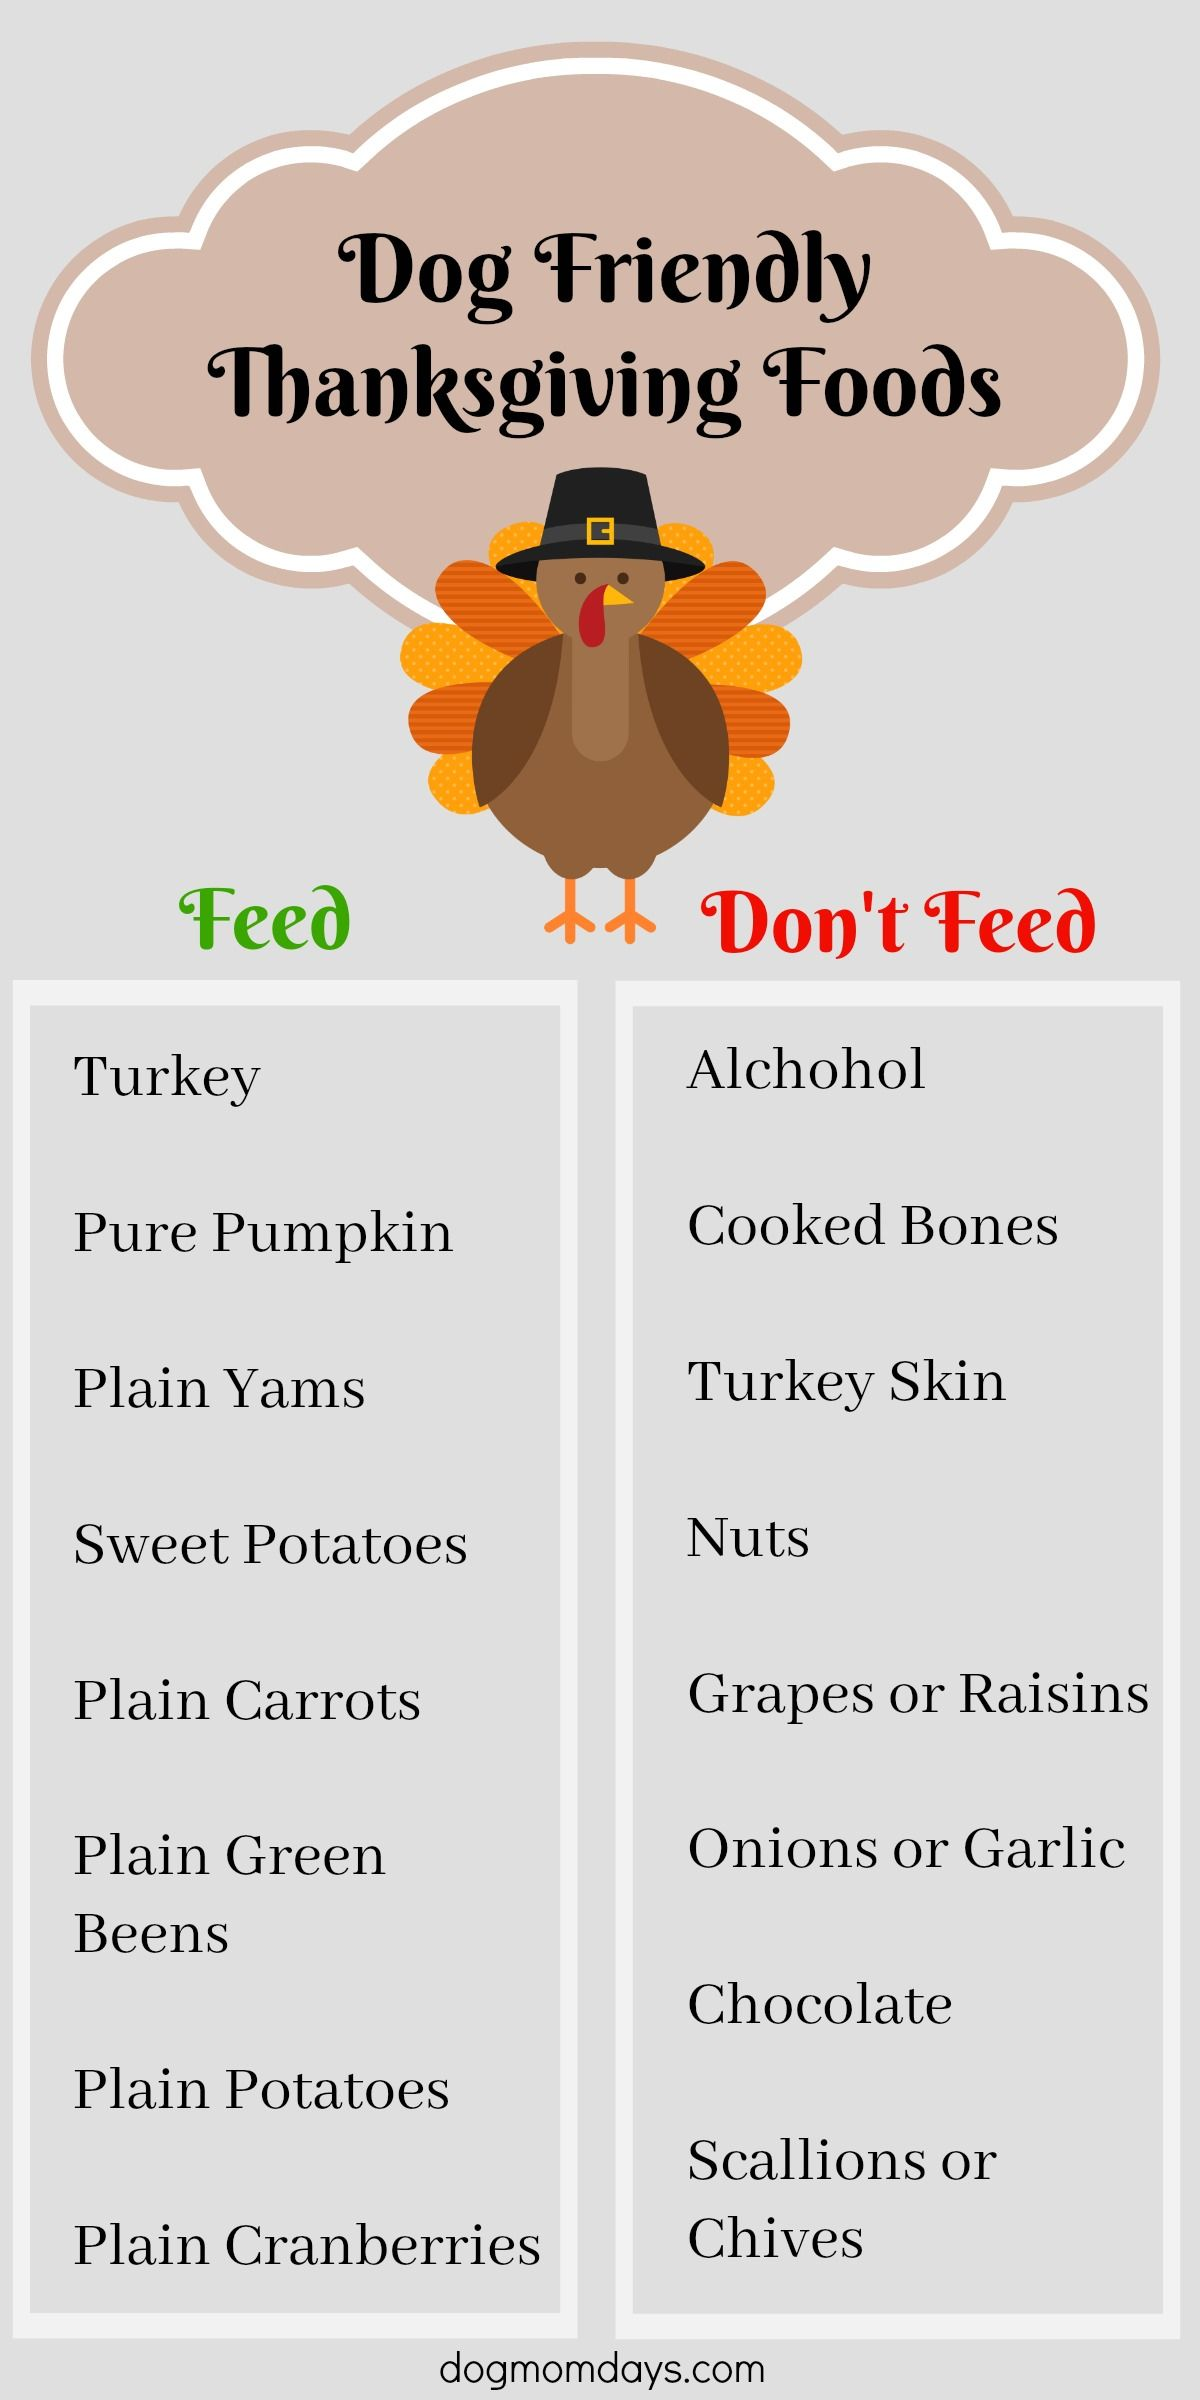 How to include your dog in thanksgiving dog nutrition